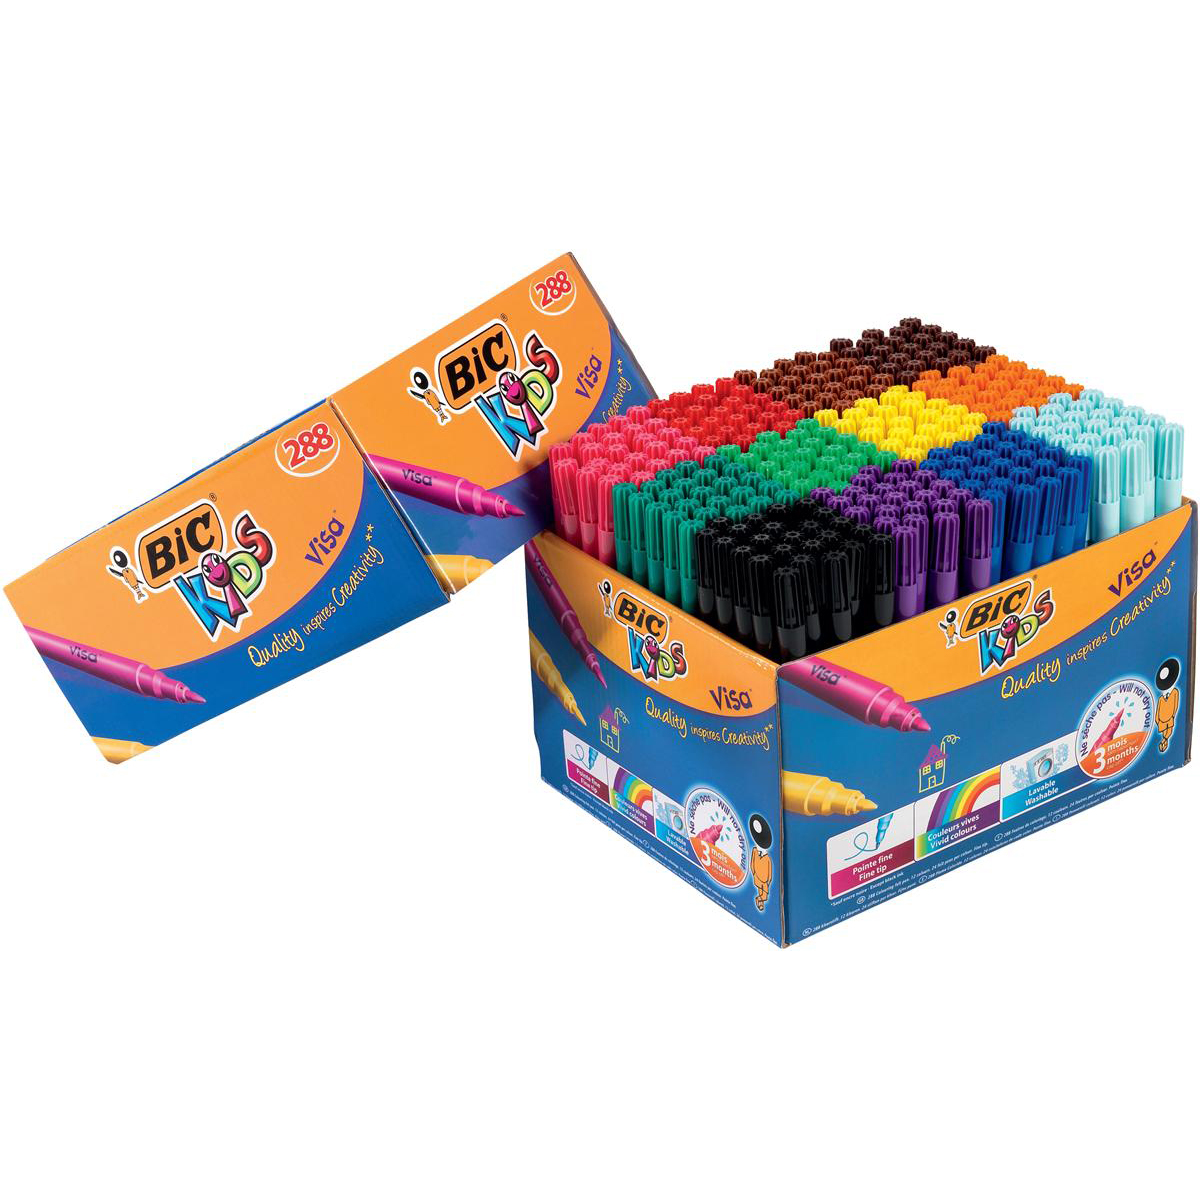 Colouring Pens Bic Kids Visa Felt Tip Pens Washable Fine Tip Class Pack Assorted Ref 897099 [Pack 288]